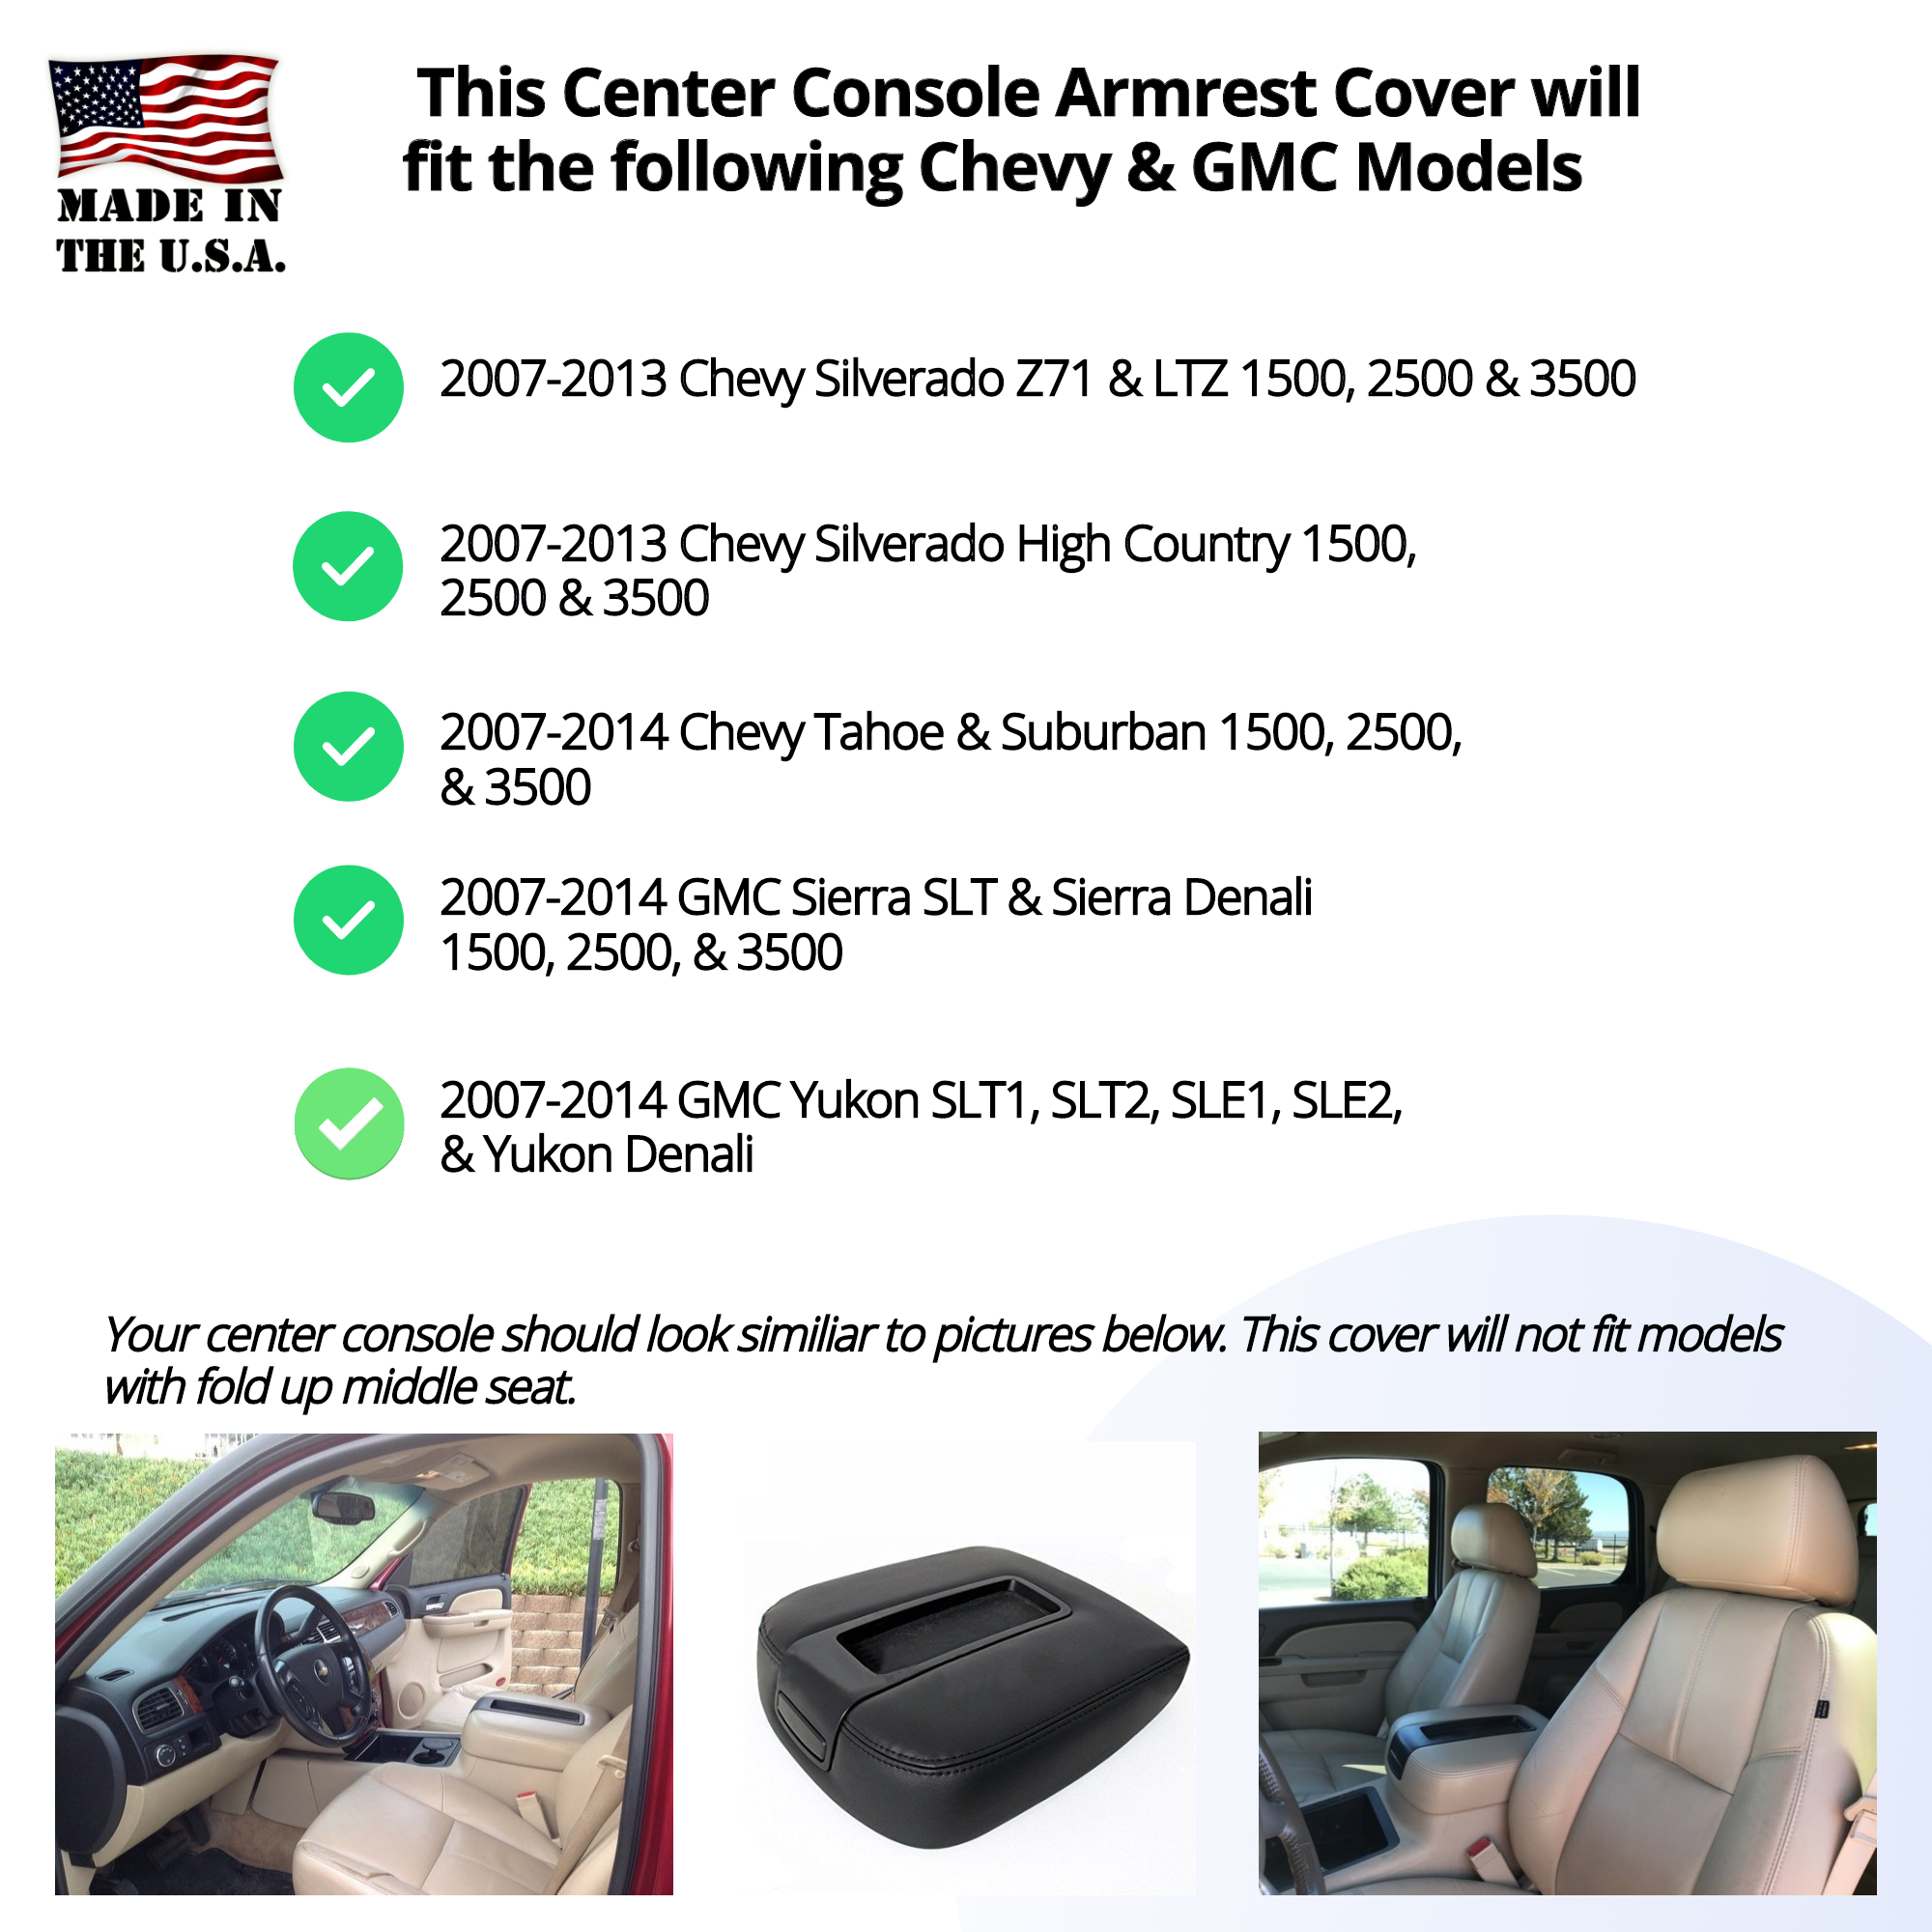 Buy Fleece Center Console Armrest Cover Fits the (2007-2014) Chevy Suburban 1500, 2500, 3500